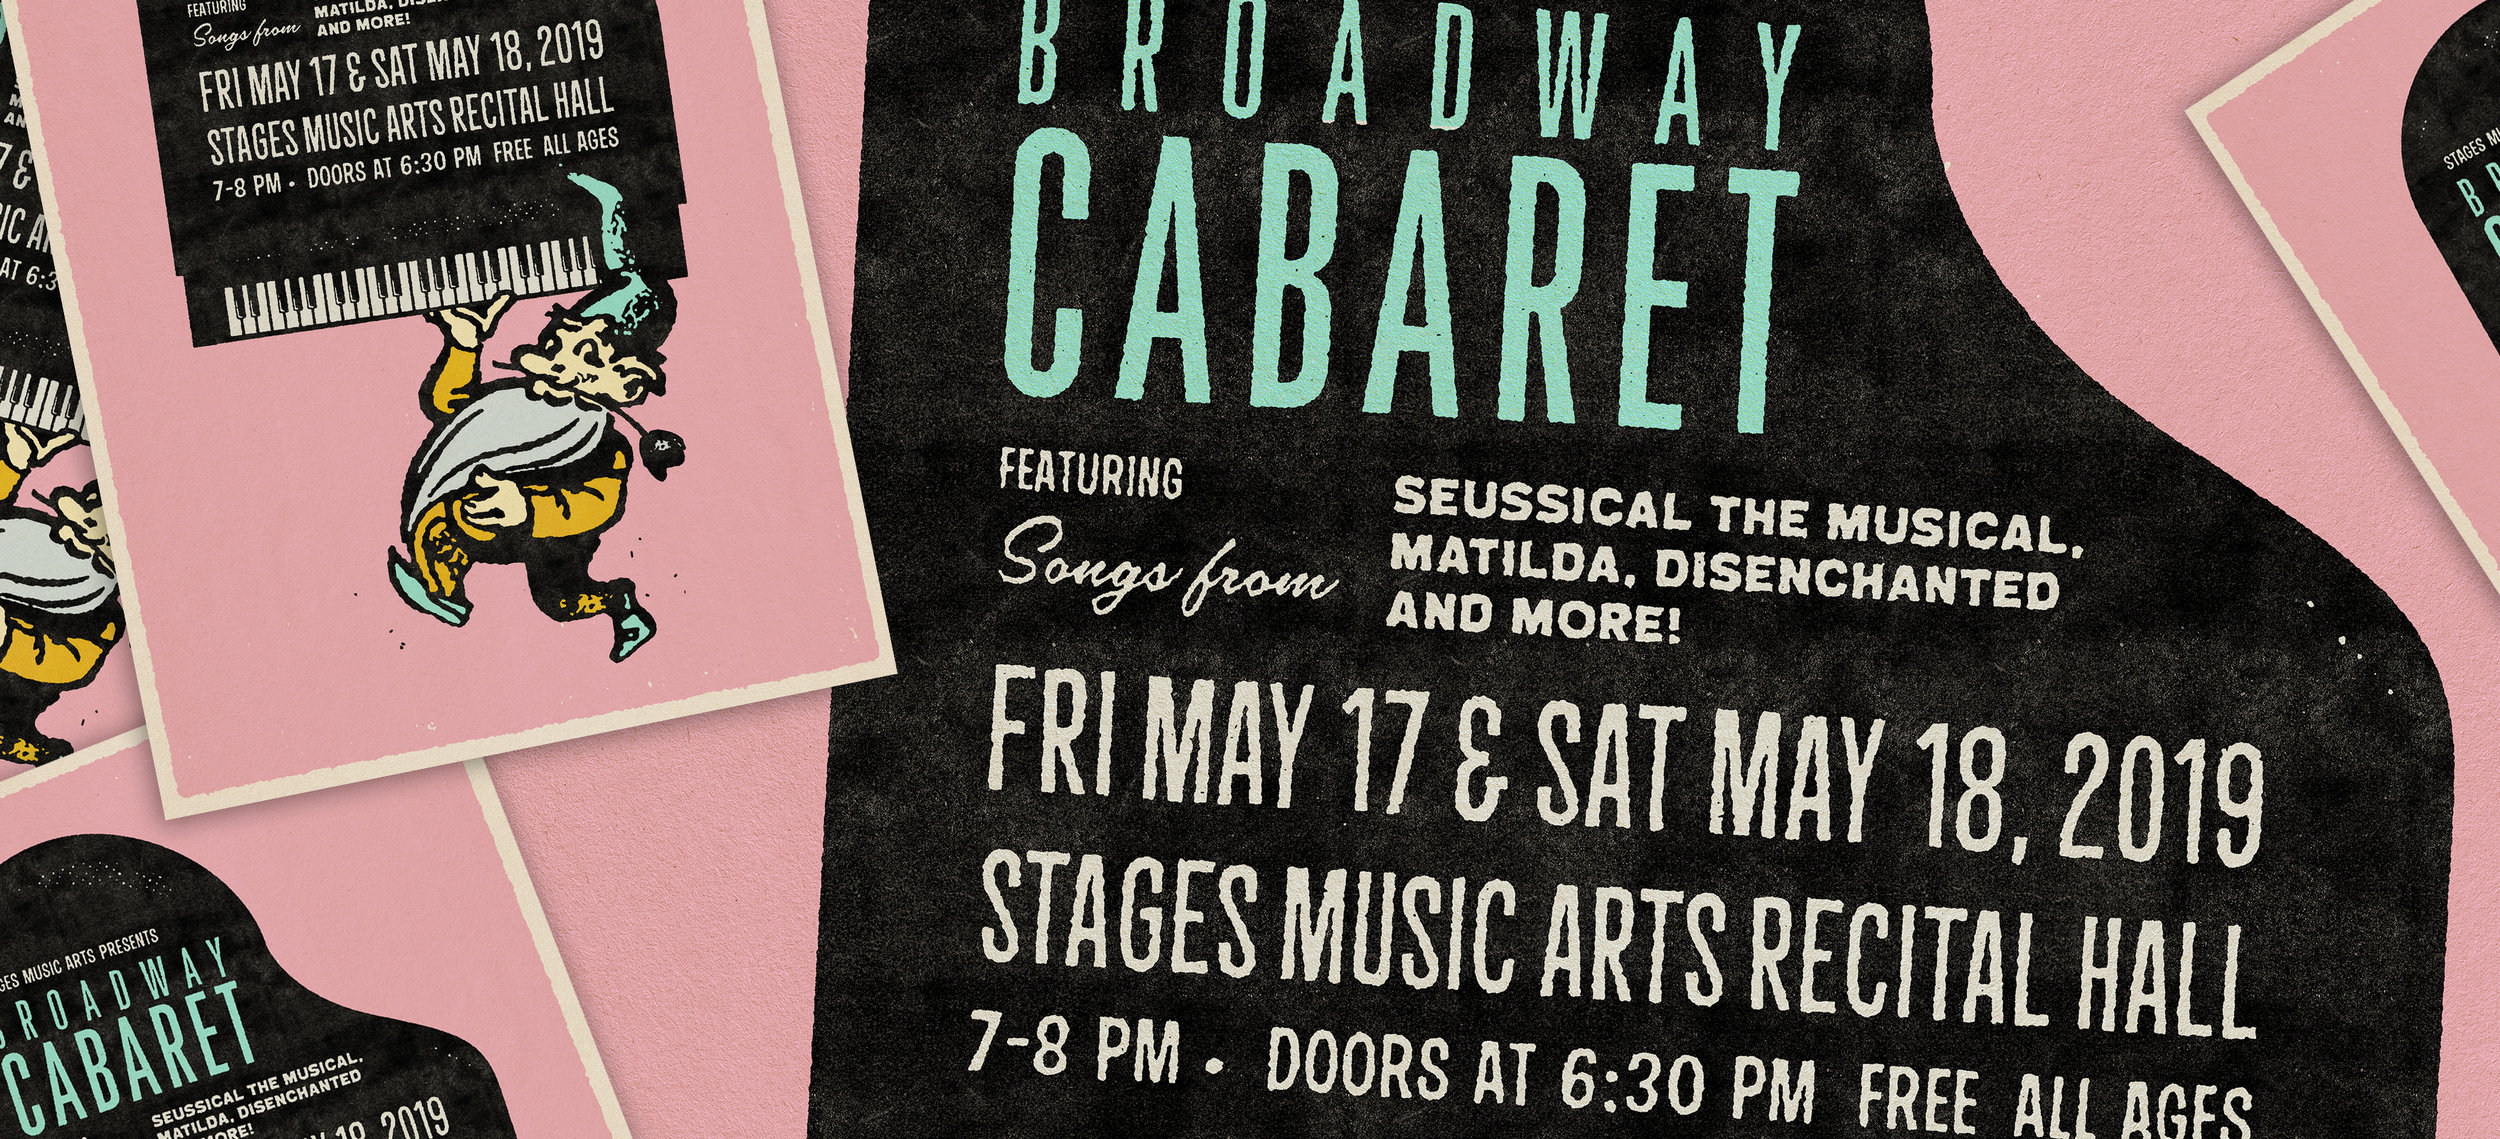 Stages Music Arts' Broadway Cabaret - Friday, May 17th & Saturday, May 18th7:00PM–8:00PMStages Music Arts Recital Hall